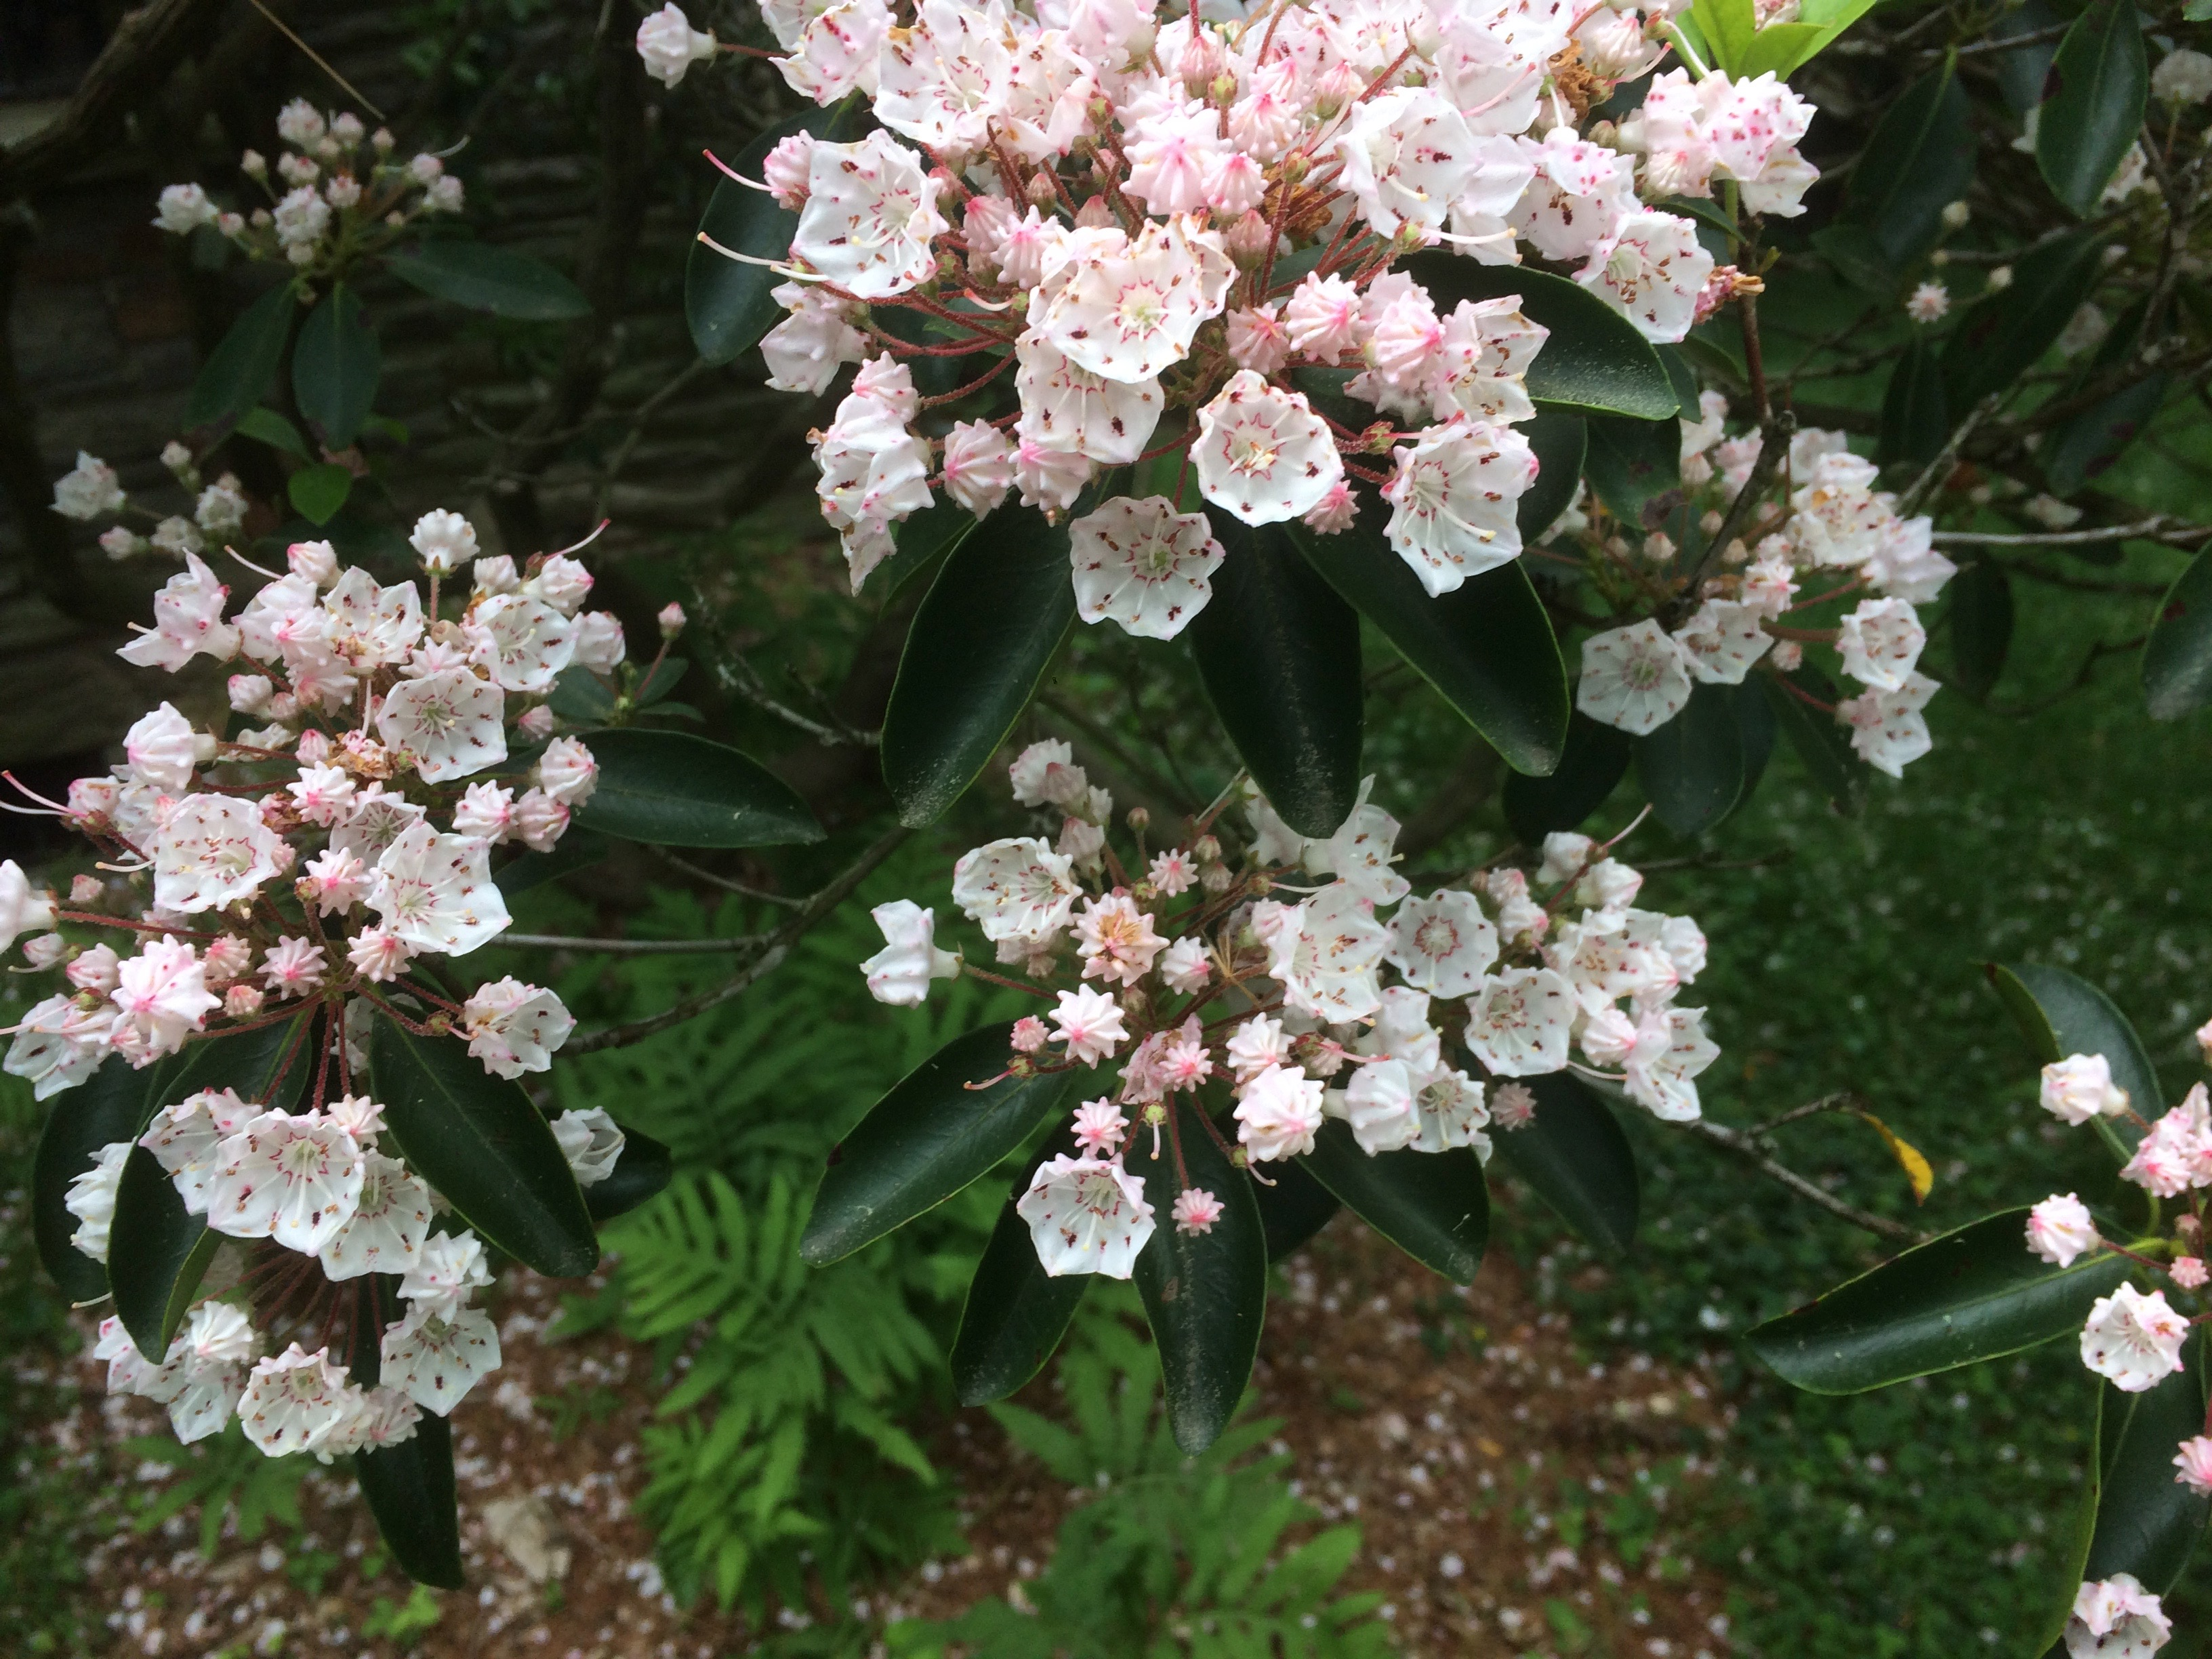 Mountain Laurel blossoms open in geometrically shaped blooms